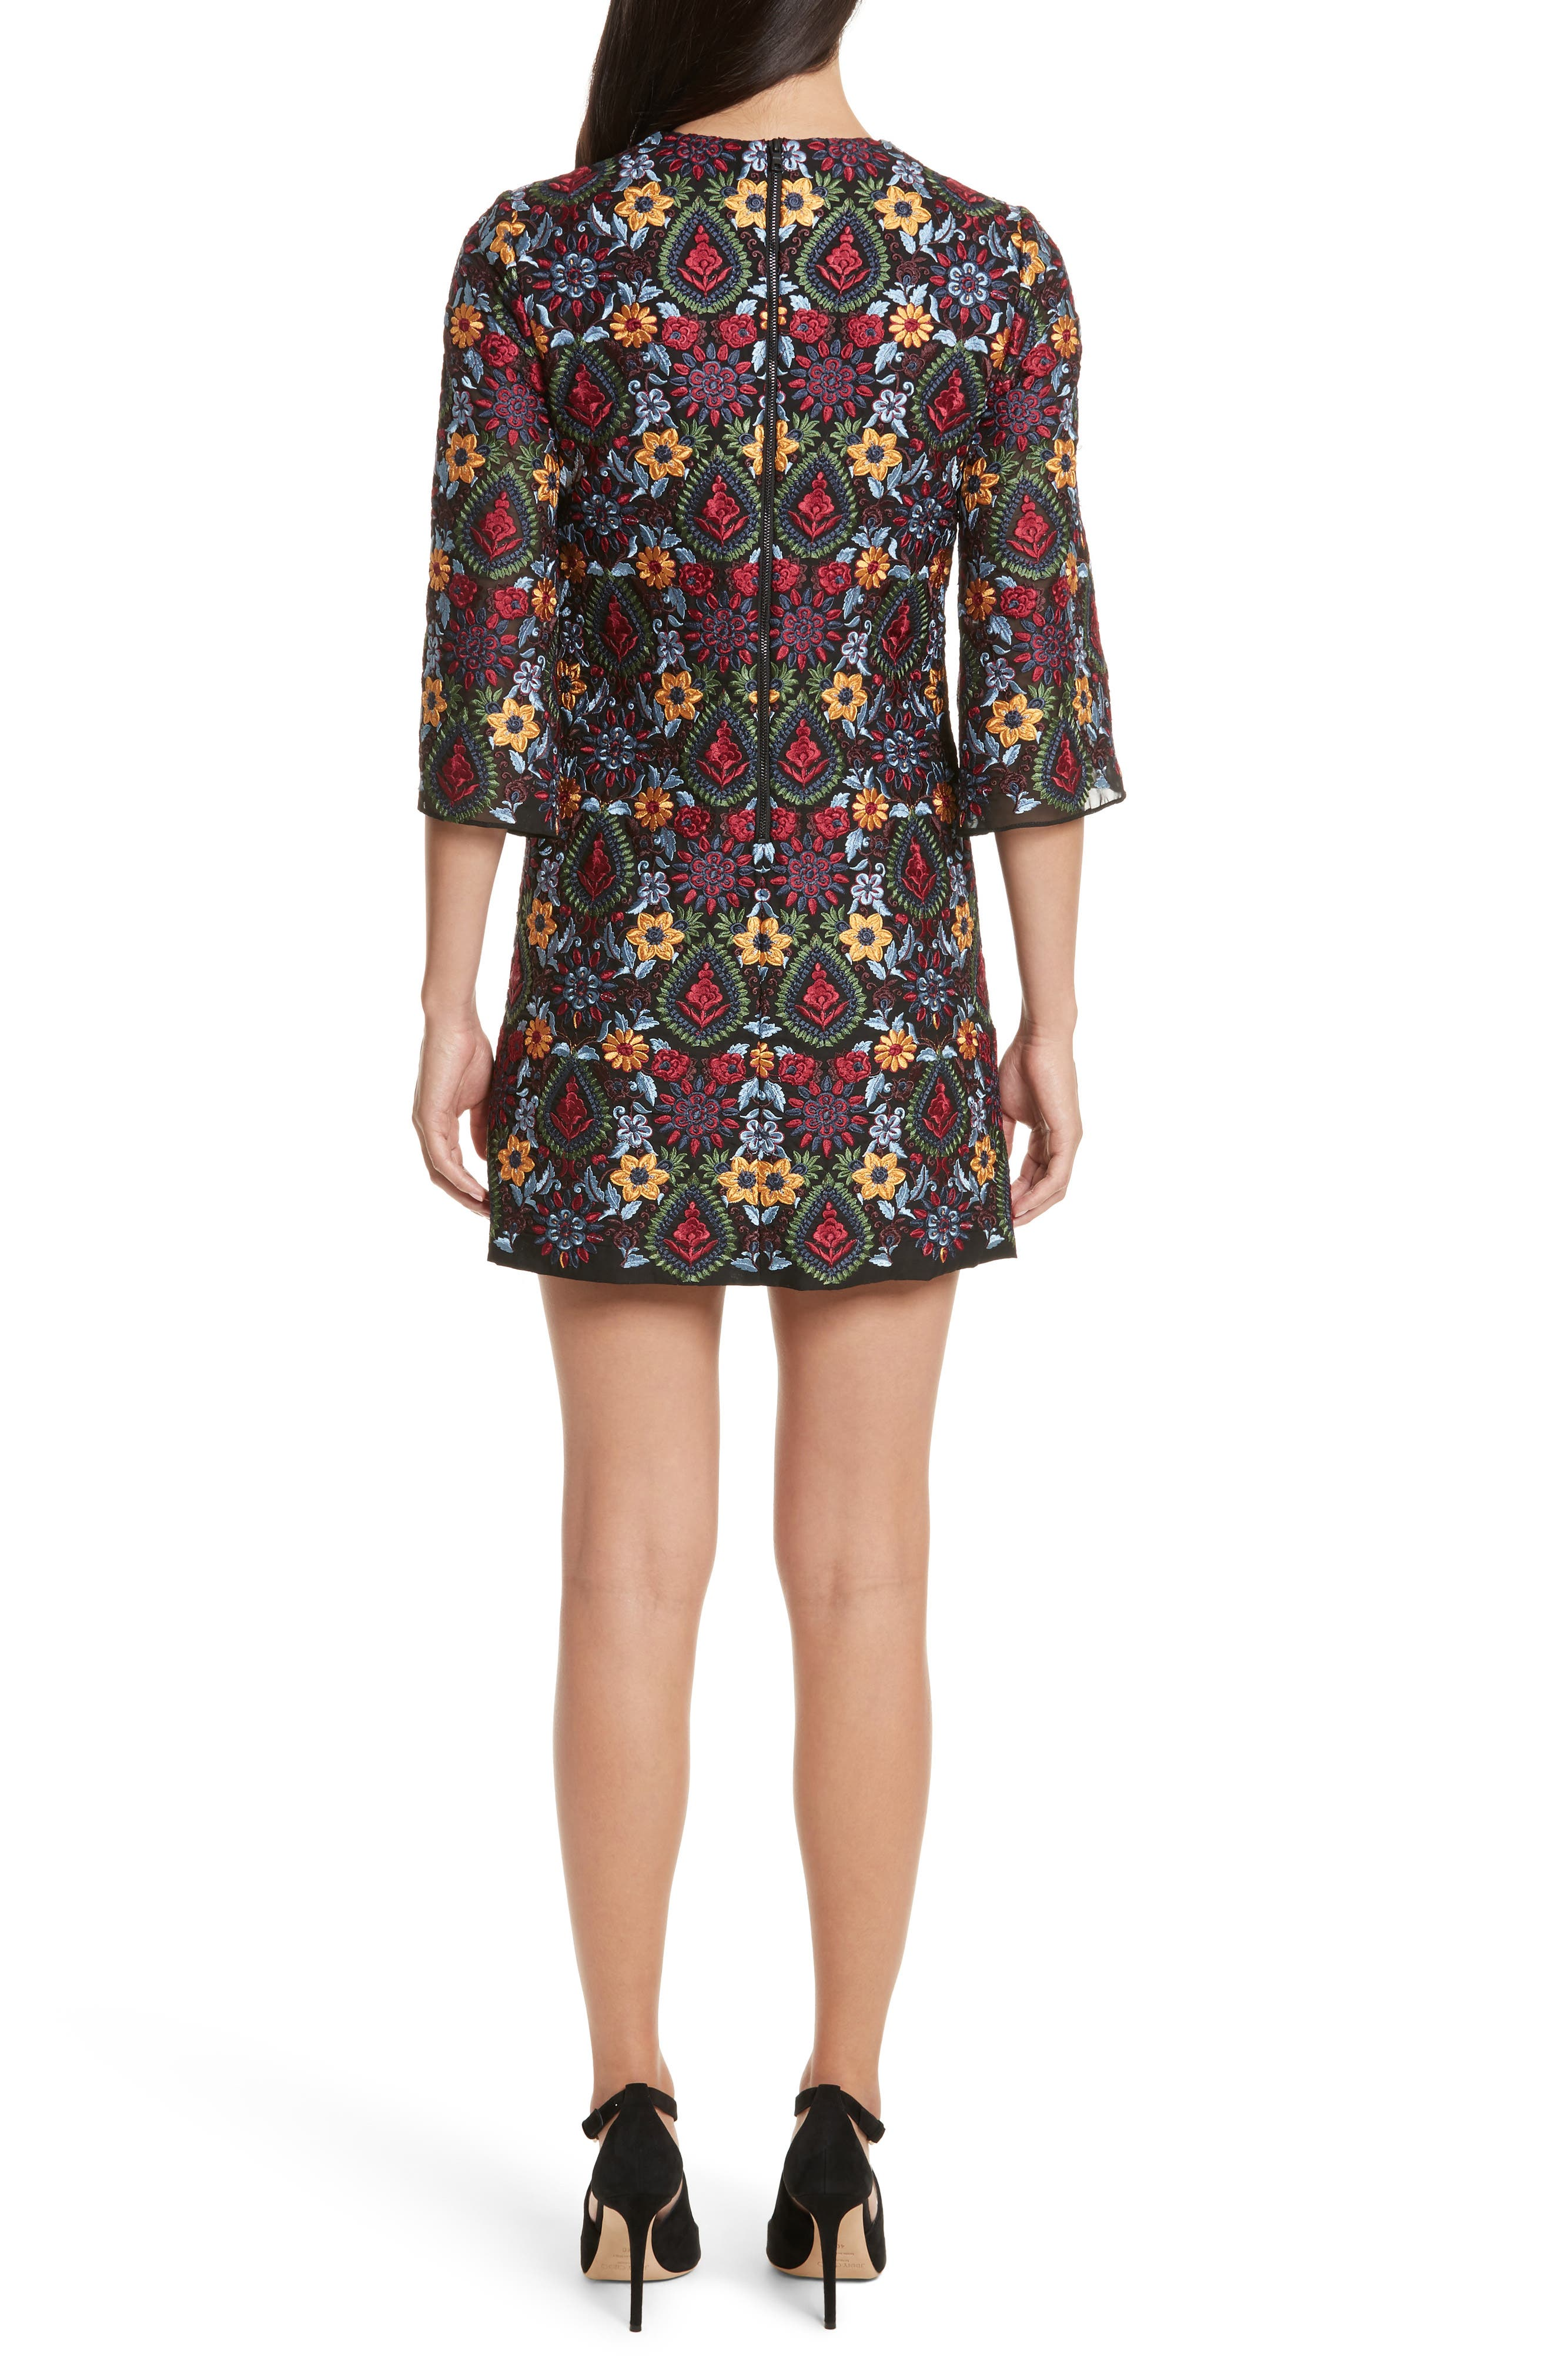 Coley Embroidered Bell Sleeve Dress,                             Alternate thumbnail 2, color,                             Black Multi